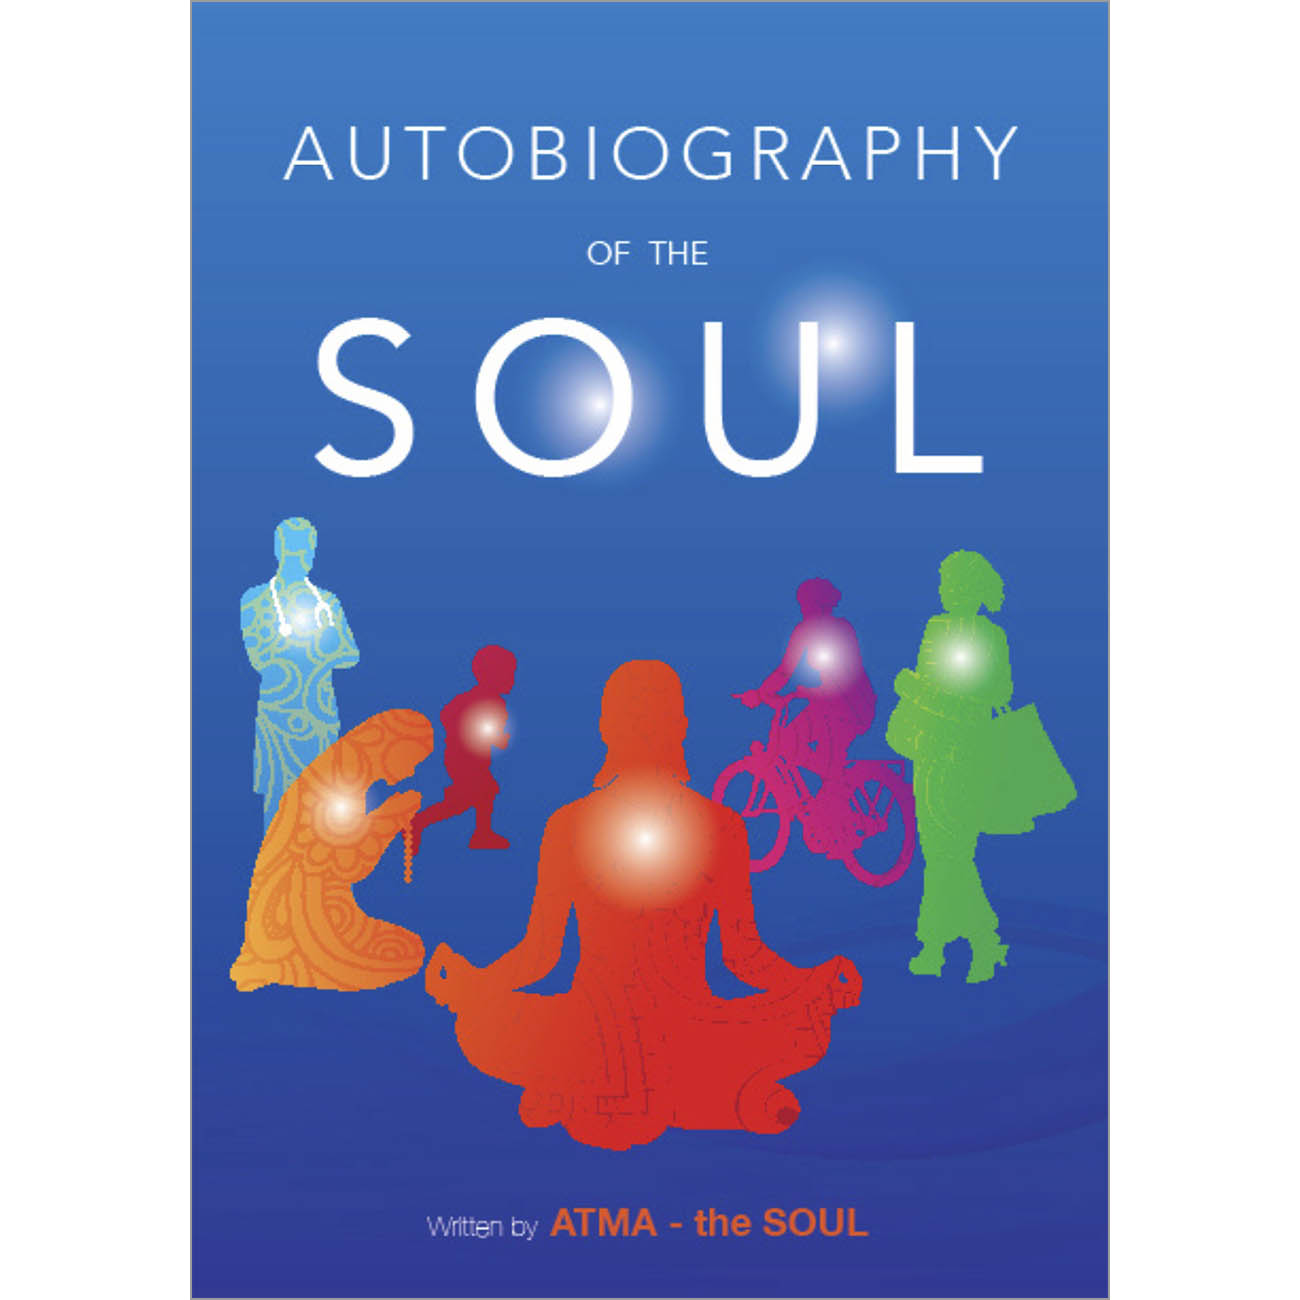 Autobiography of the Soul